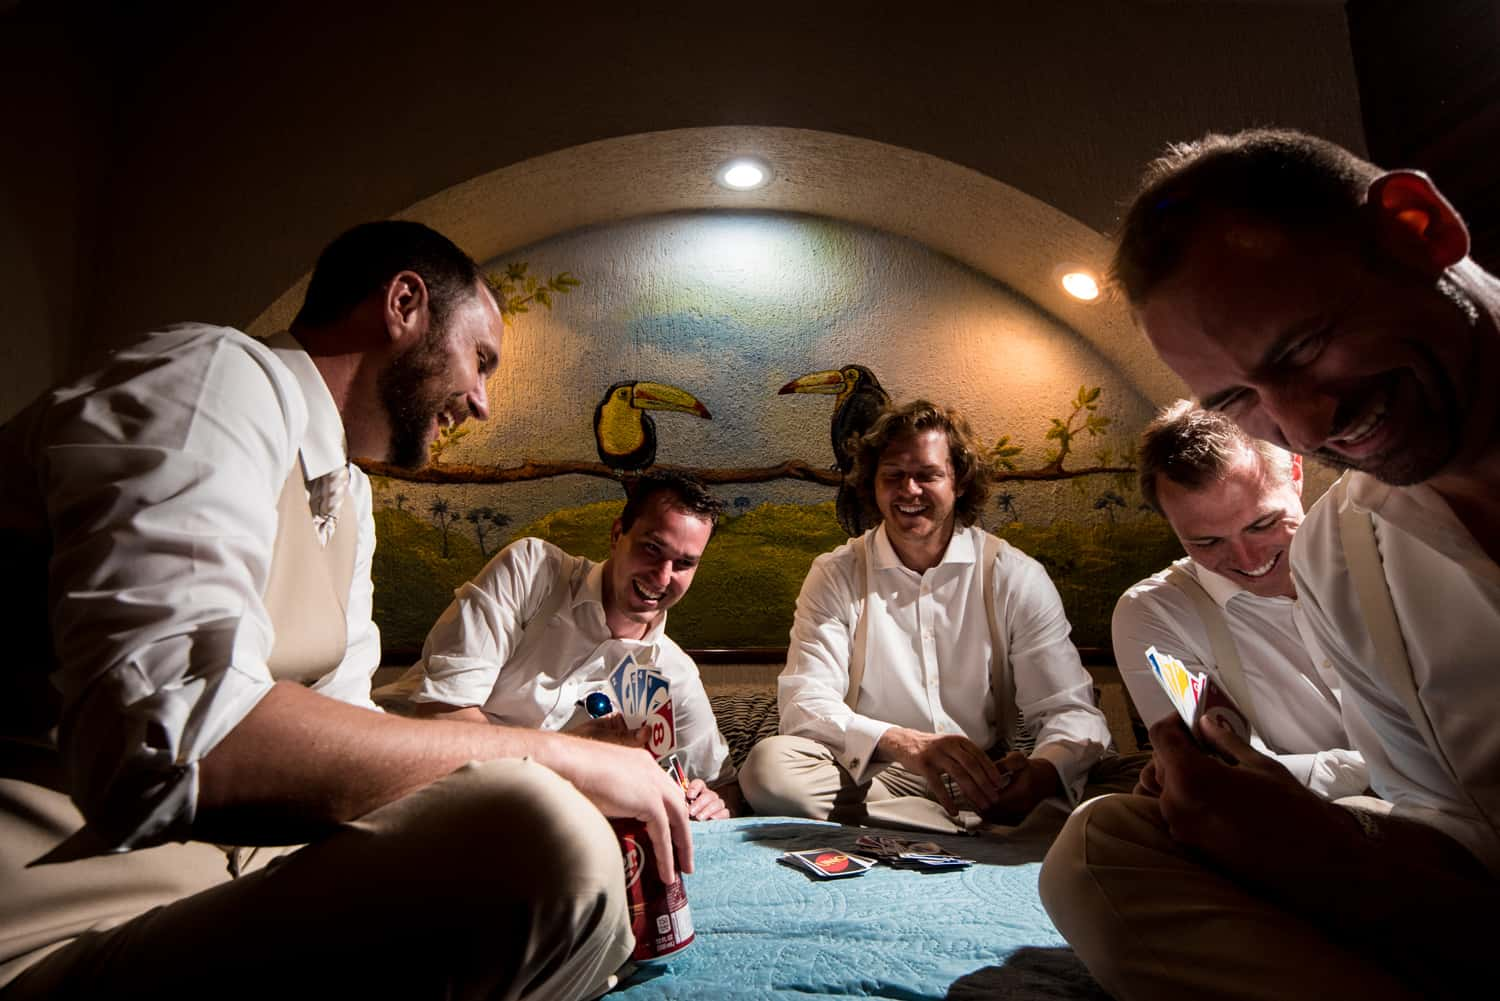 Groomsmen laughing playing cards